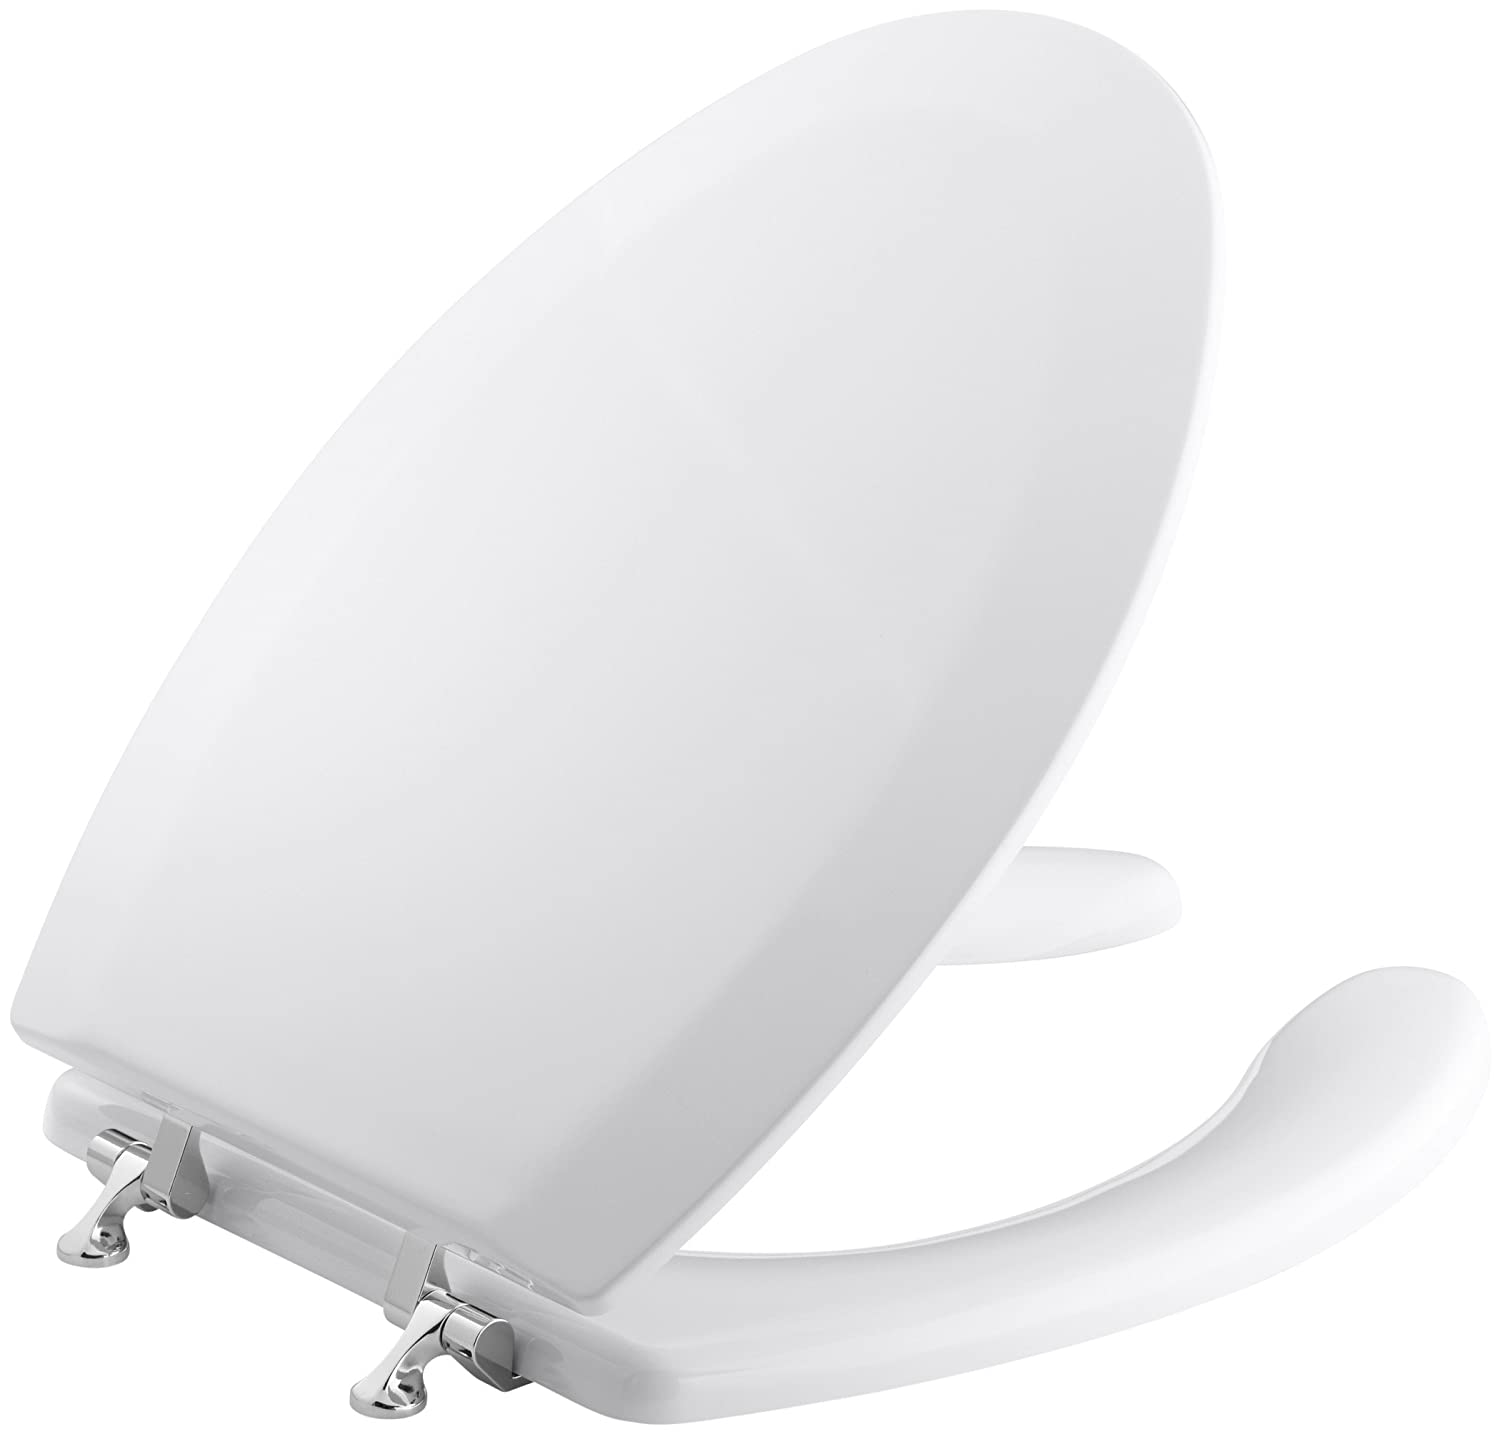 Marvelous Kohler K 4710 Gs 0 Triko Elongated Molded Toilet Seat With Open Front Cover And Polished Chrome Hinges White Inzonedesignstudio Interior Chair Design Inzonedesignstudiocom